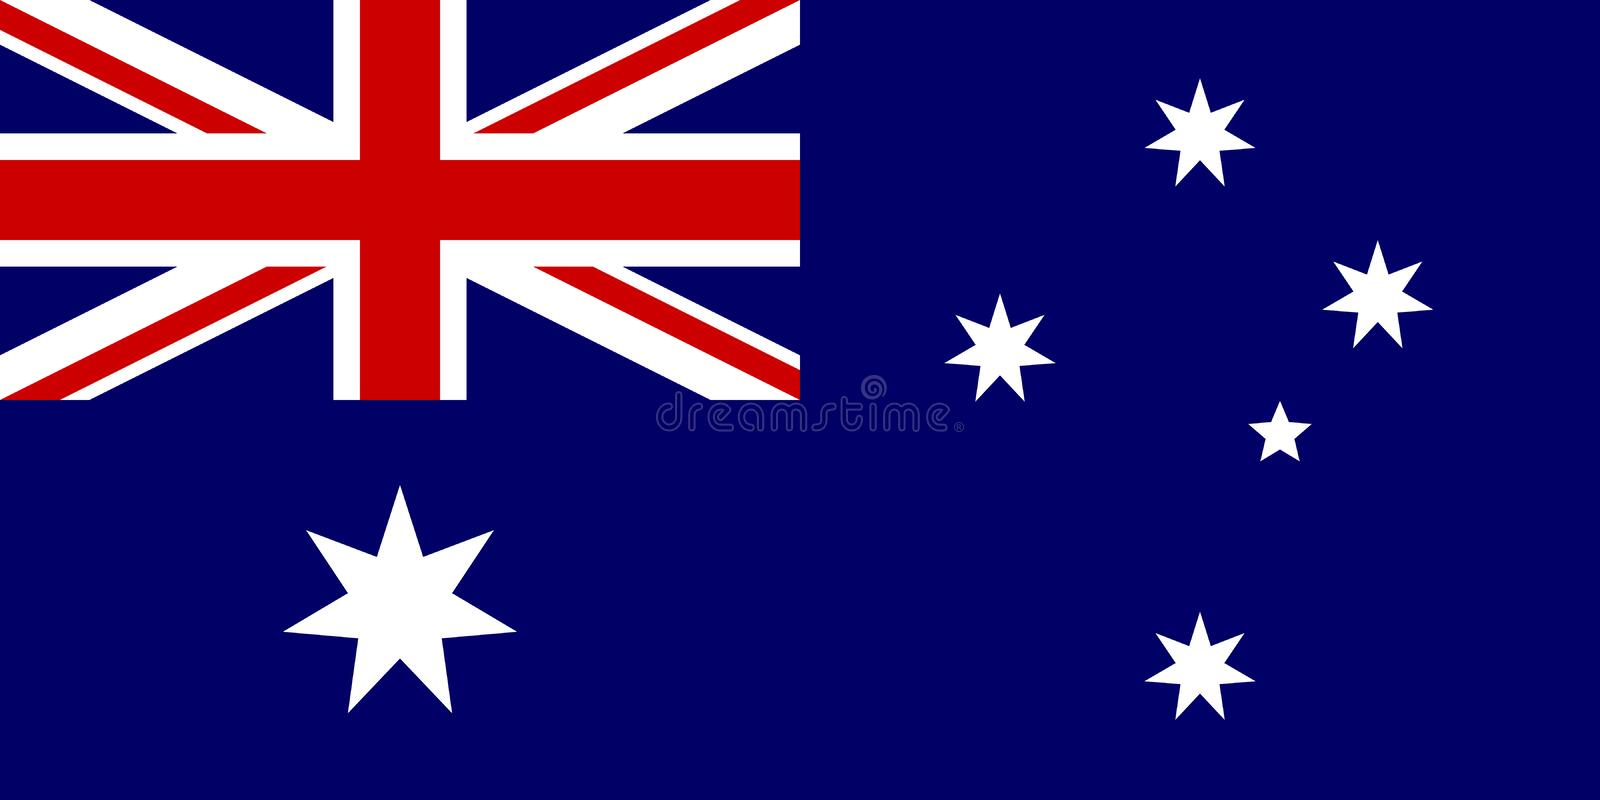 Australian Flag. Australian national flag - massive 7200 x 3600 size